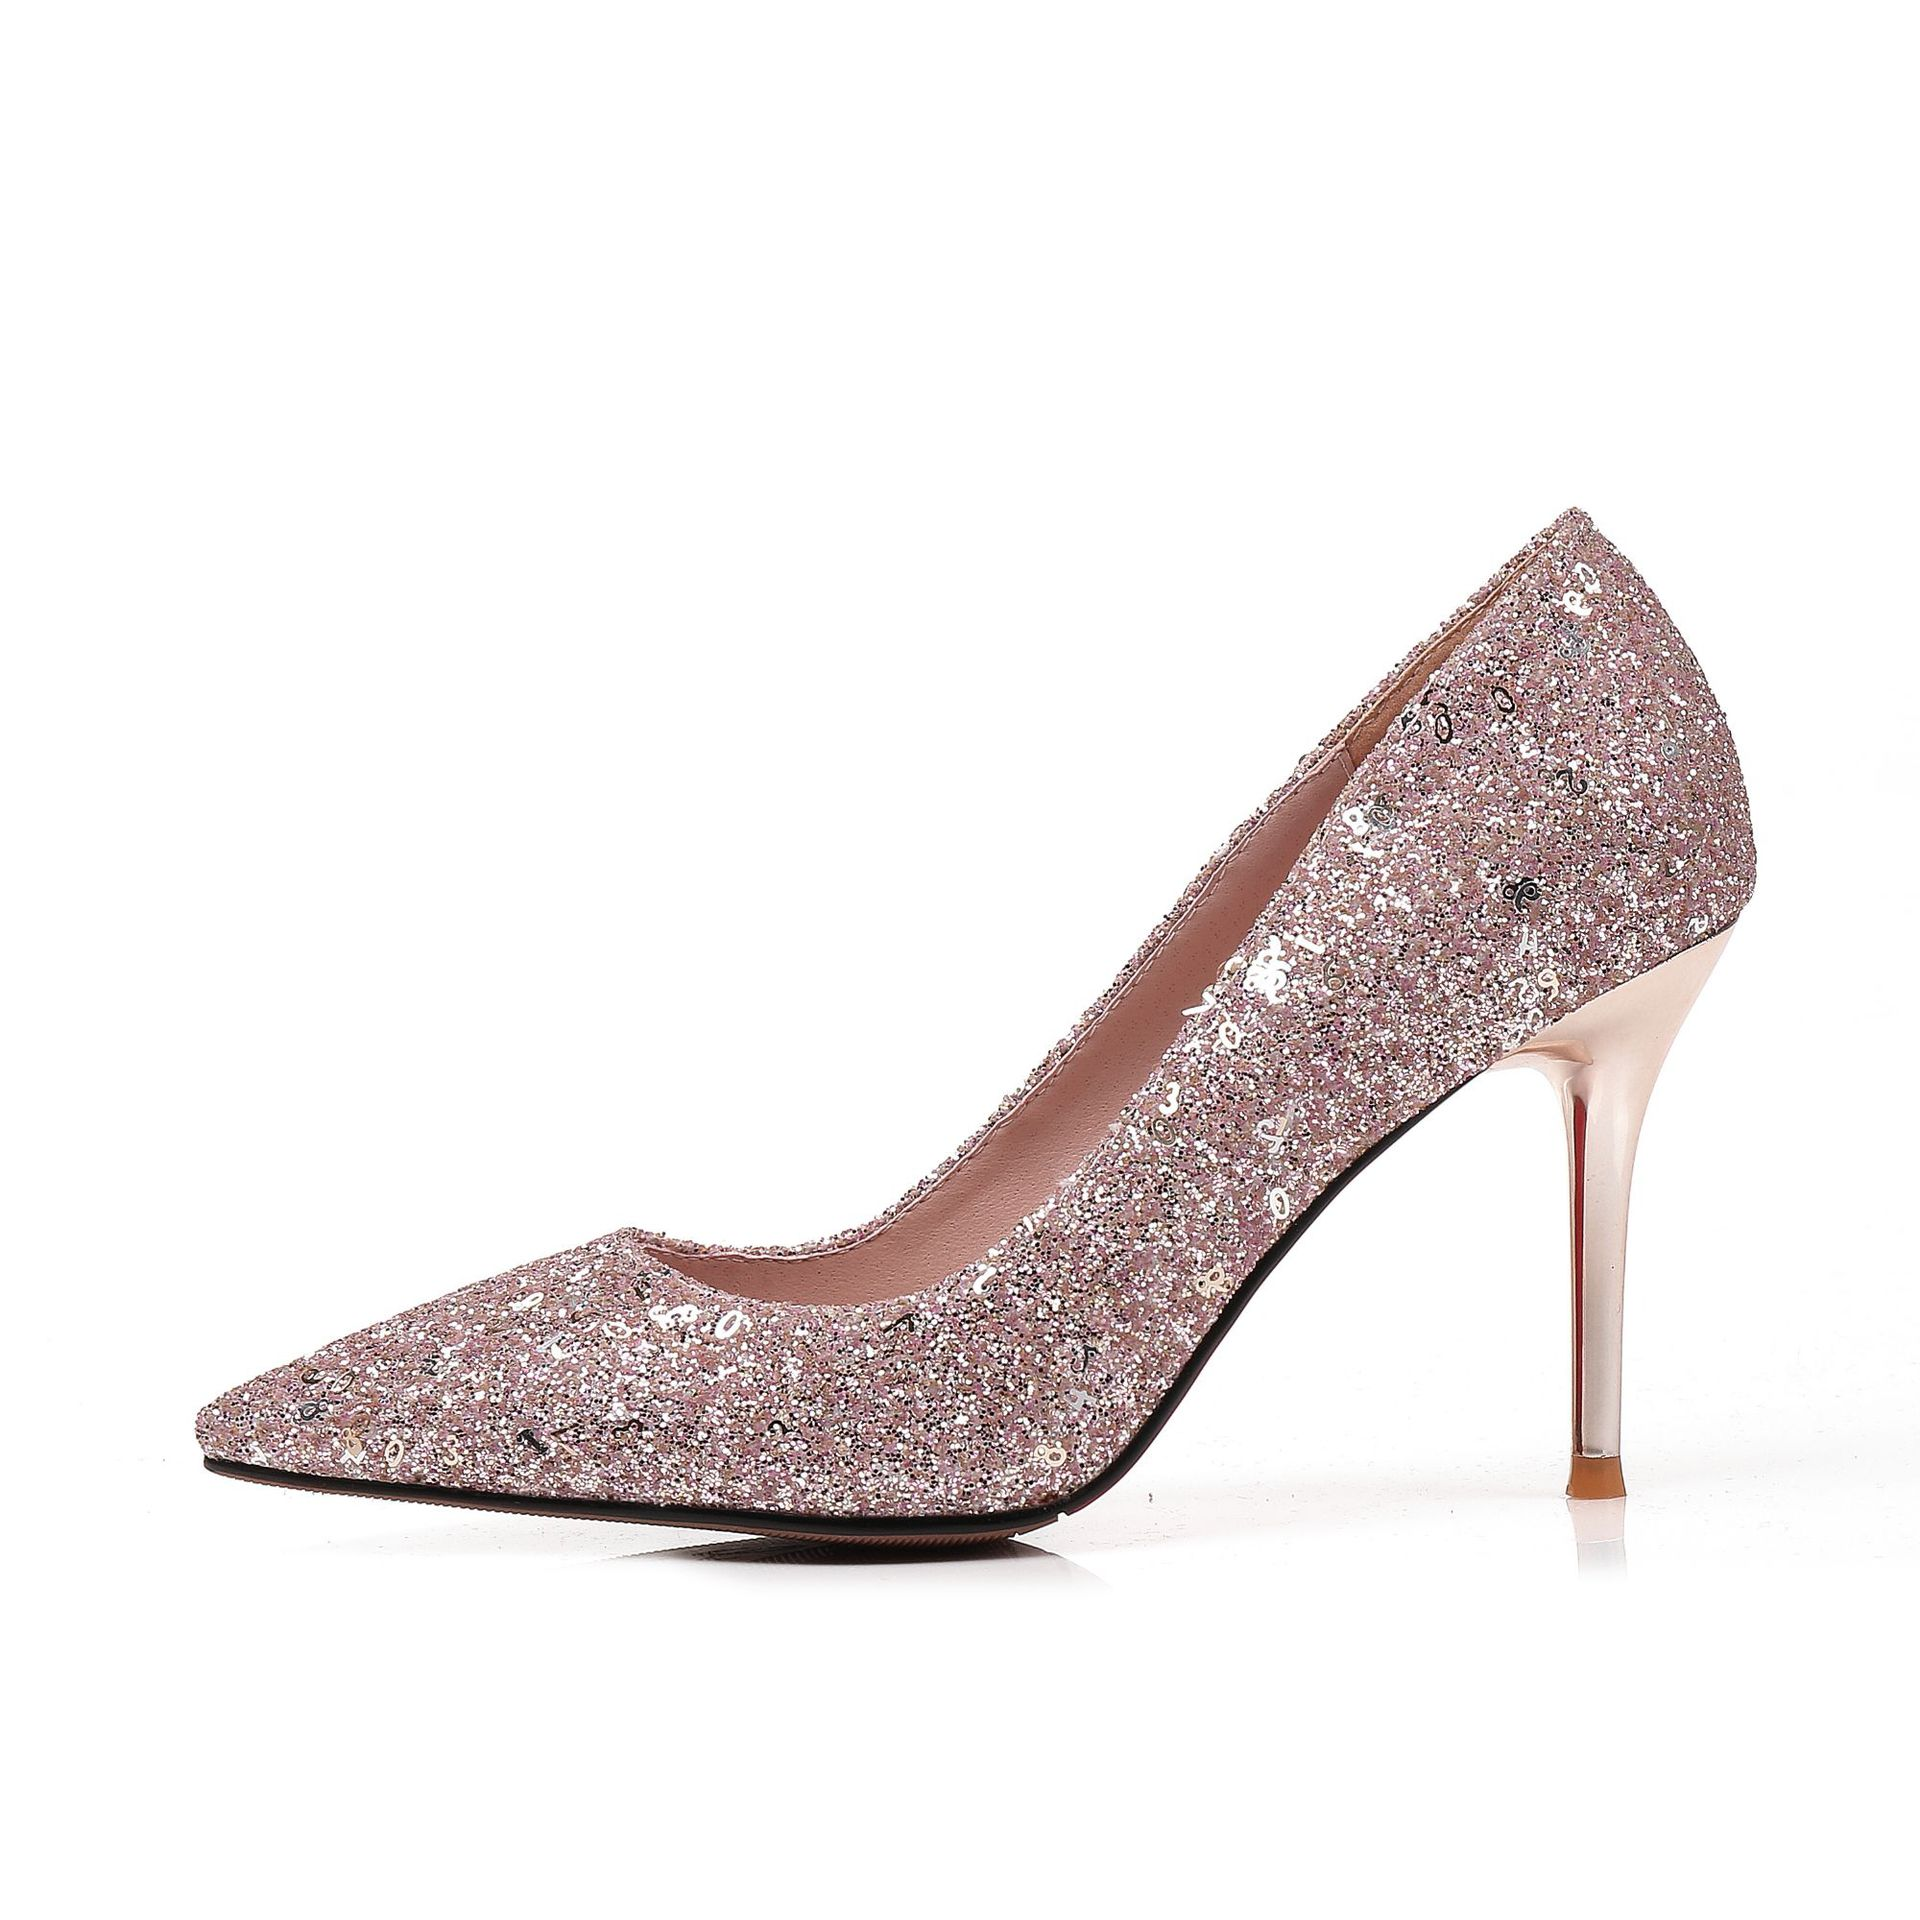 Moraima snc 2019 new stiletto heels pointed sequin single shoes wedding shoes large size womens shoesMoraima snc 2019 new stiletto heels pointed sequin single shoes wedding shoes large size womens shoes